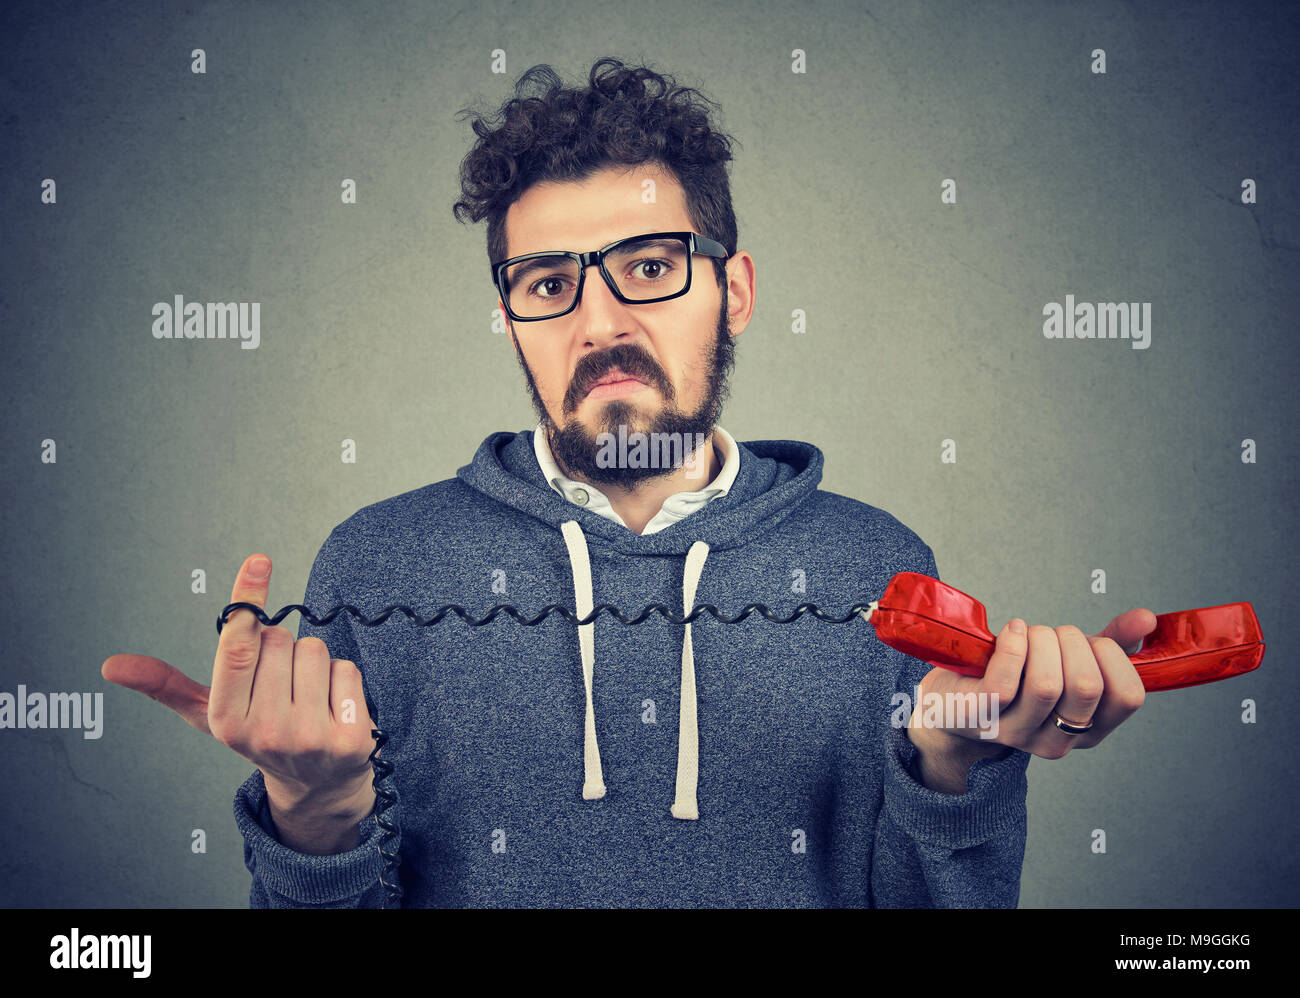 Disgusted young man looking at camera with bewilderment and confusion holding old fashioned red handset. - Stock Image